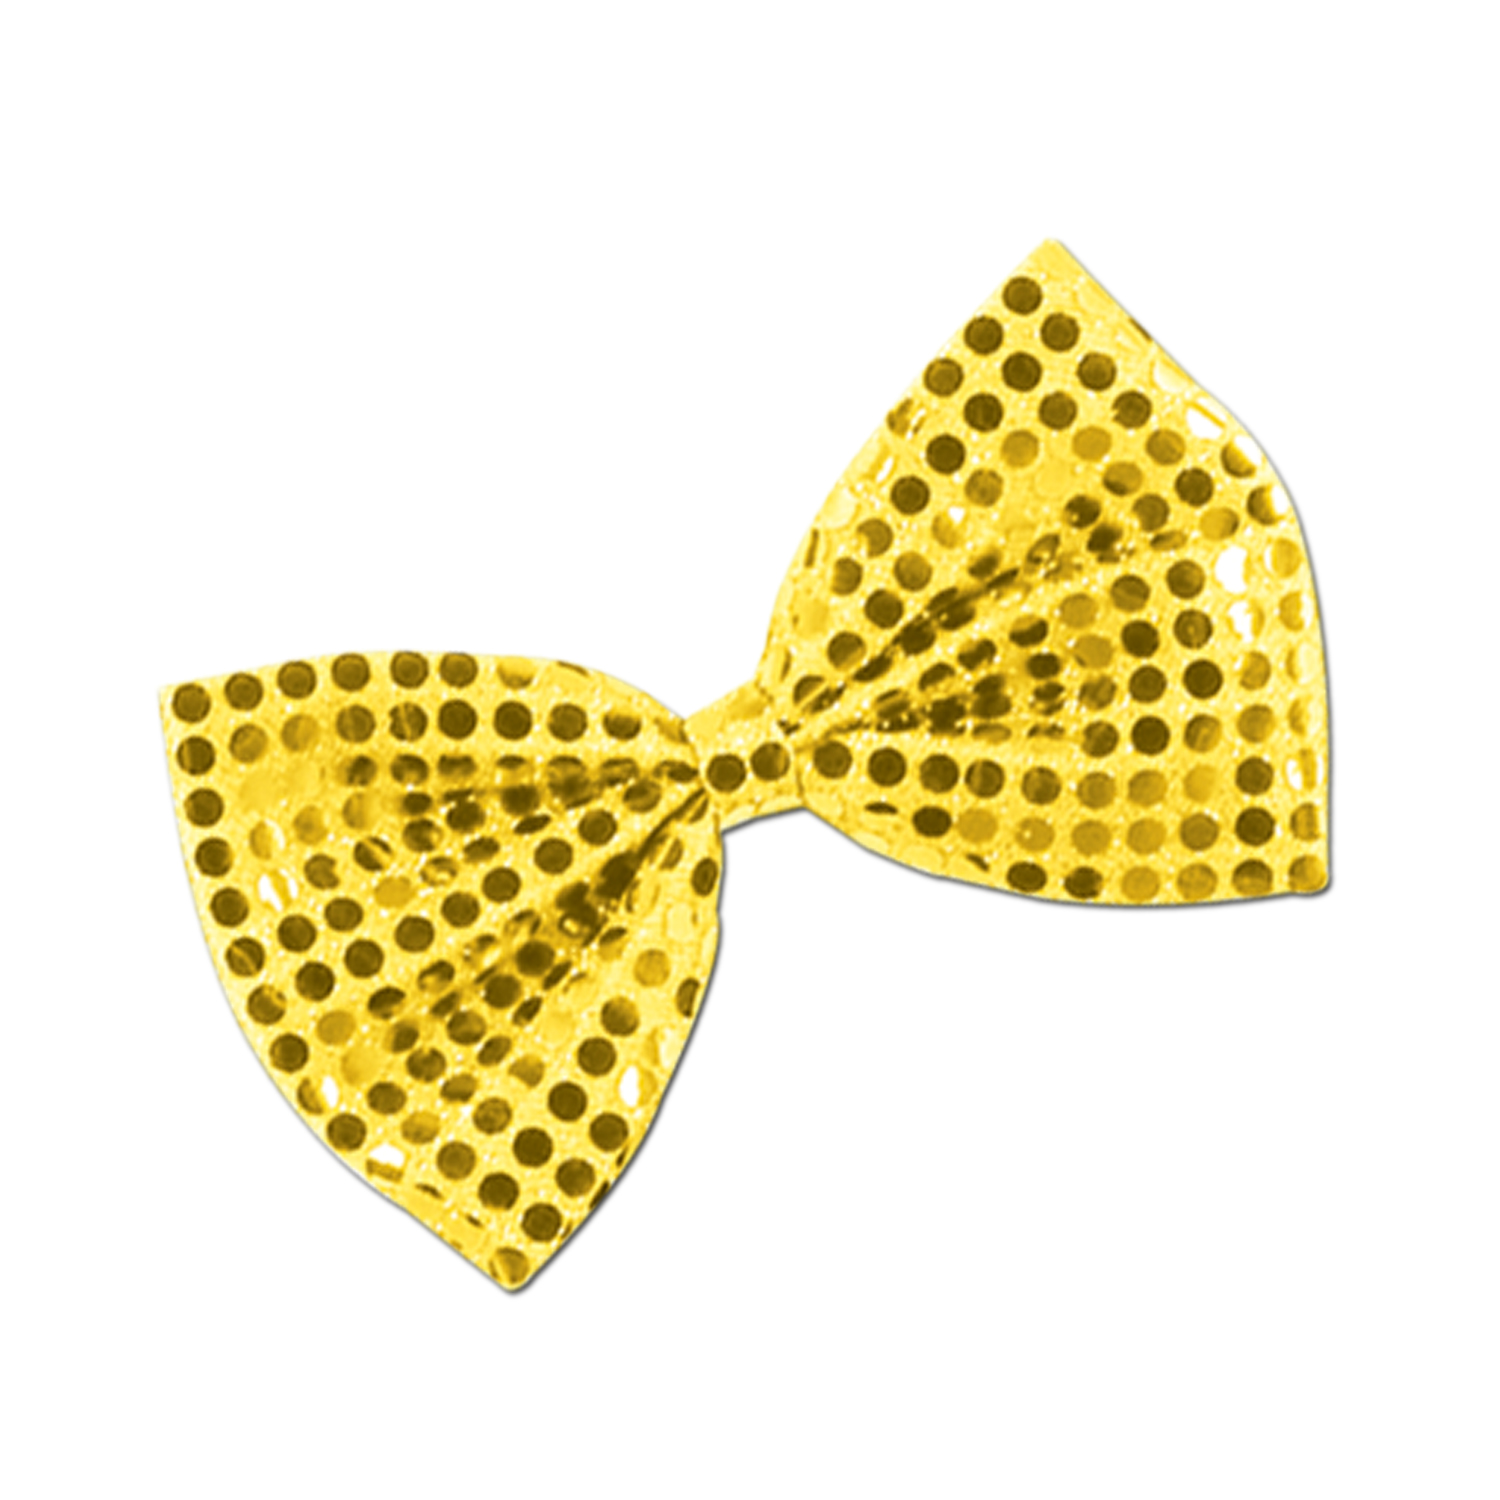 Glitz 'N Gleam Bow Tie 4.25x7in gold